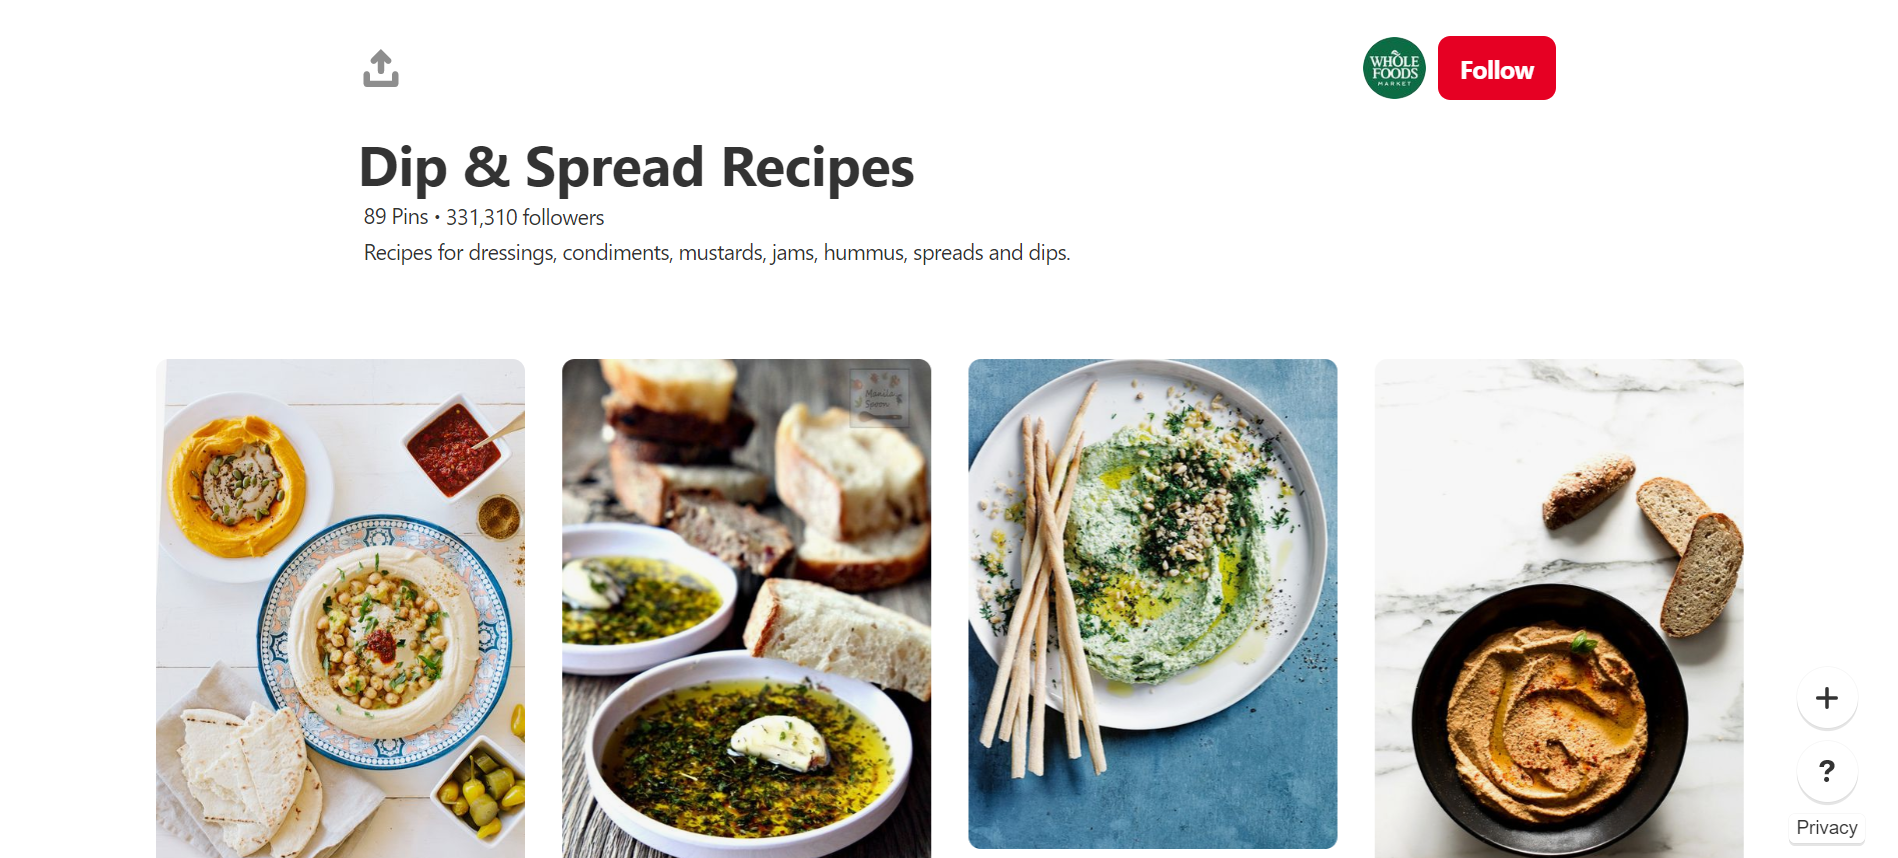 Whole Foods Market is one of the great online stores on Pinterest